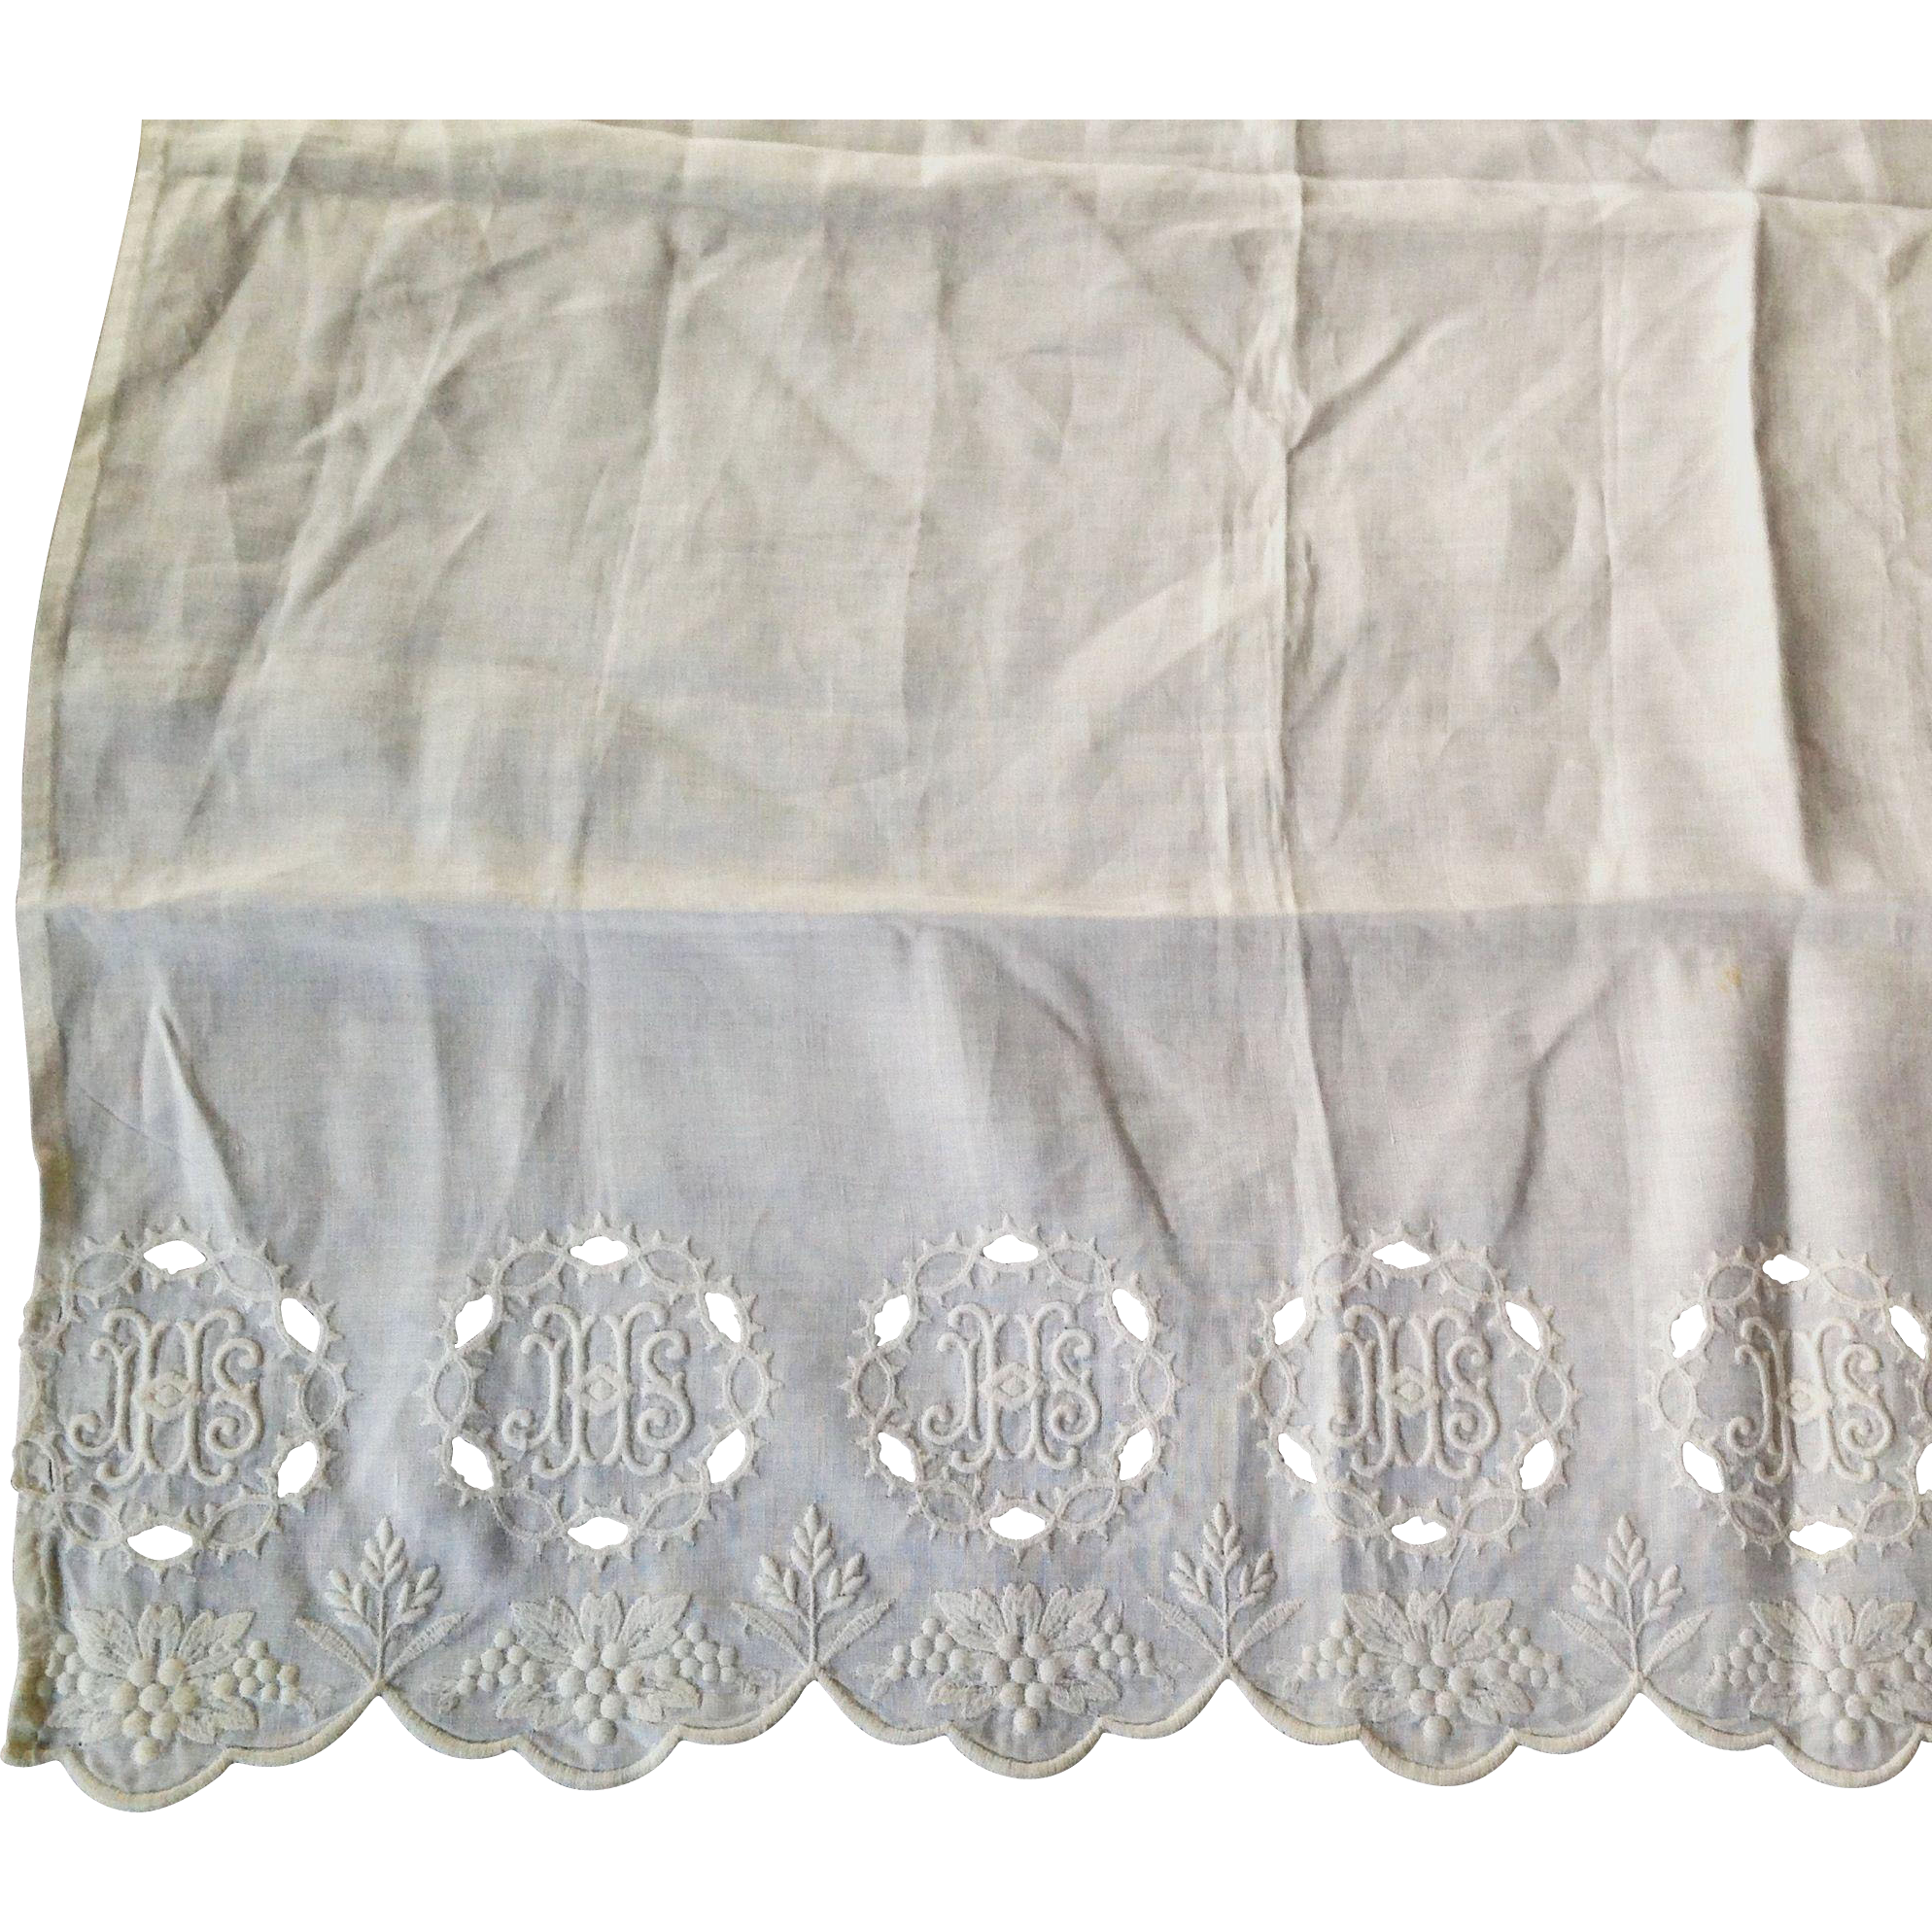 Communion Table Altar Cloth From Manderlyestates On Ruby Lane